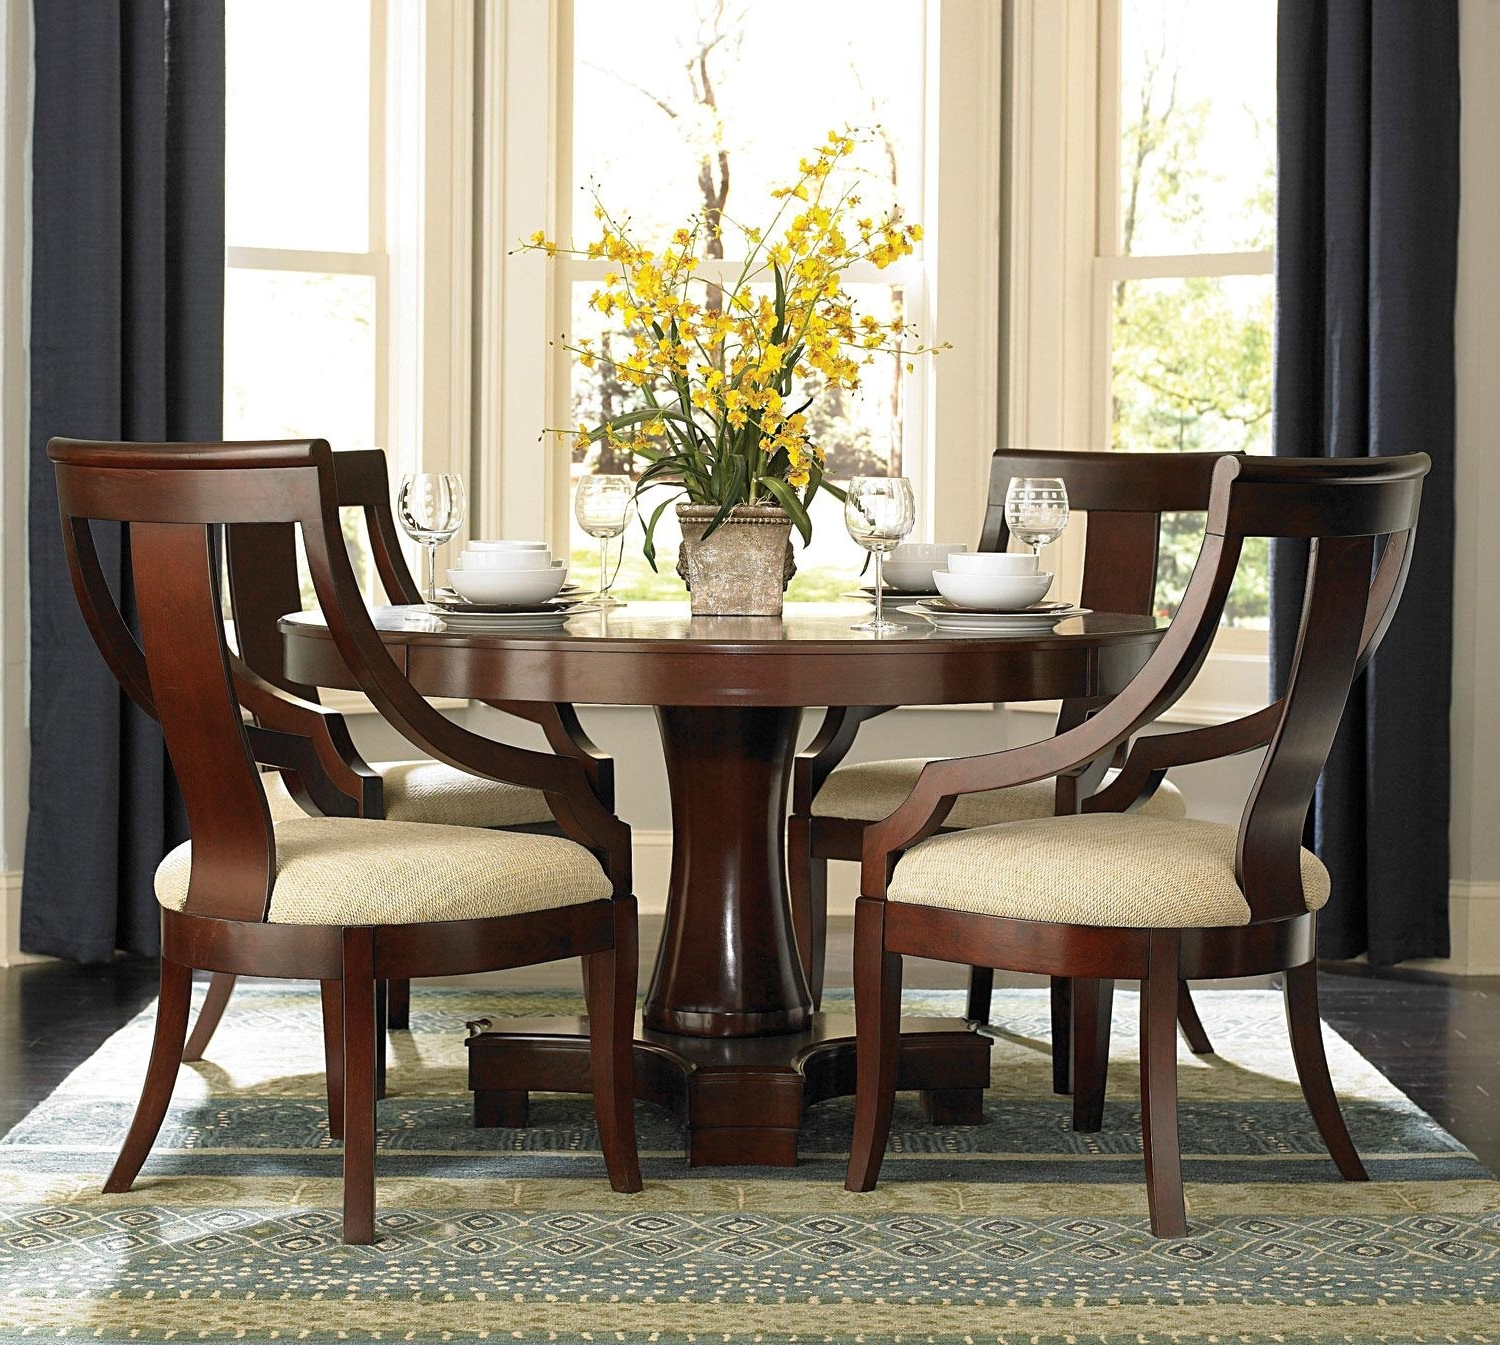 2018 Dining Room Dark Wood Table Big Dining Room Table Black Dining Table regarding Big Dining Tables For Sale